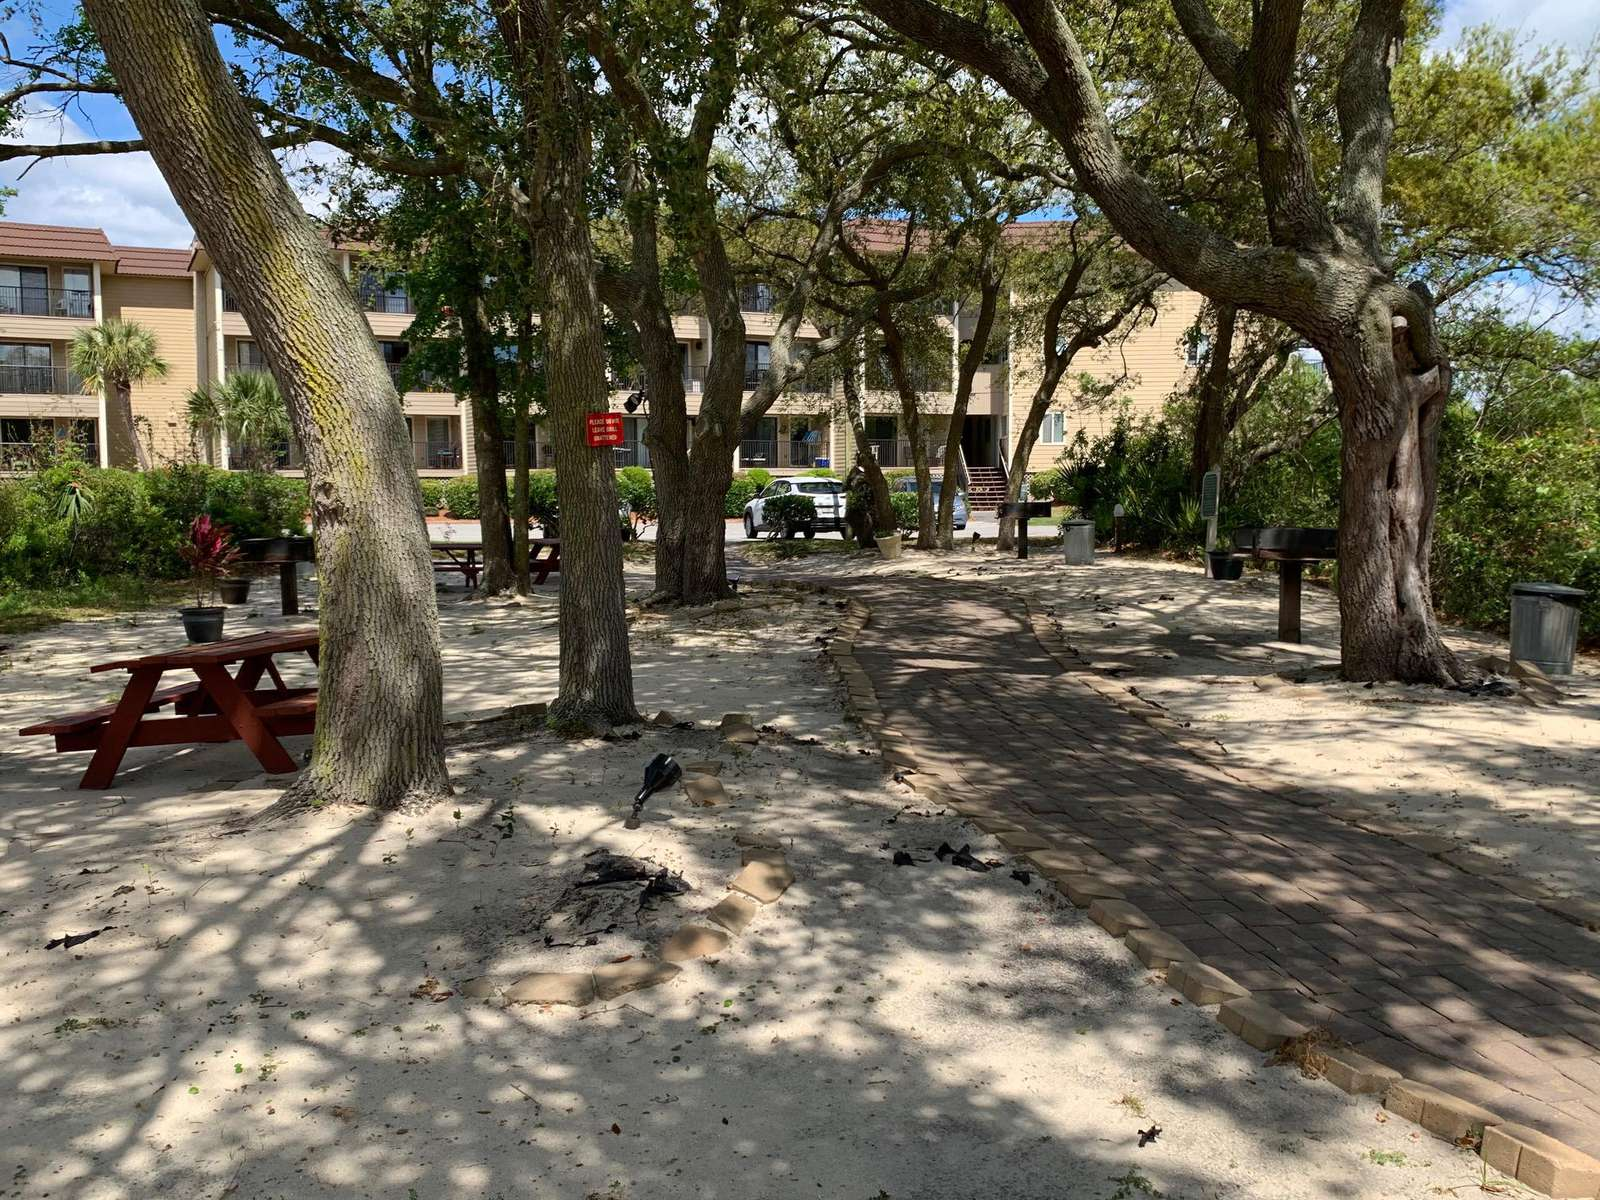 Picnic areas with Charcoal Grills at the resort